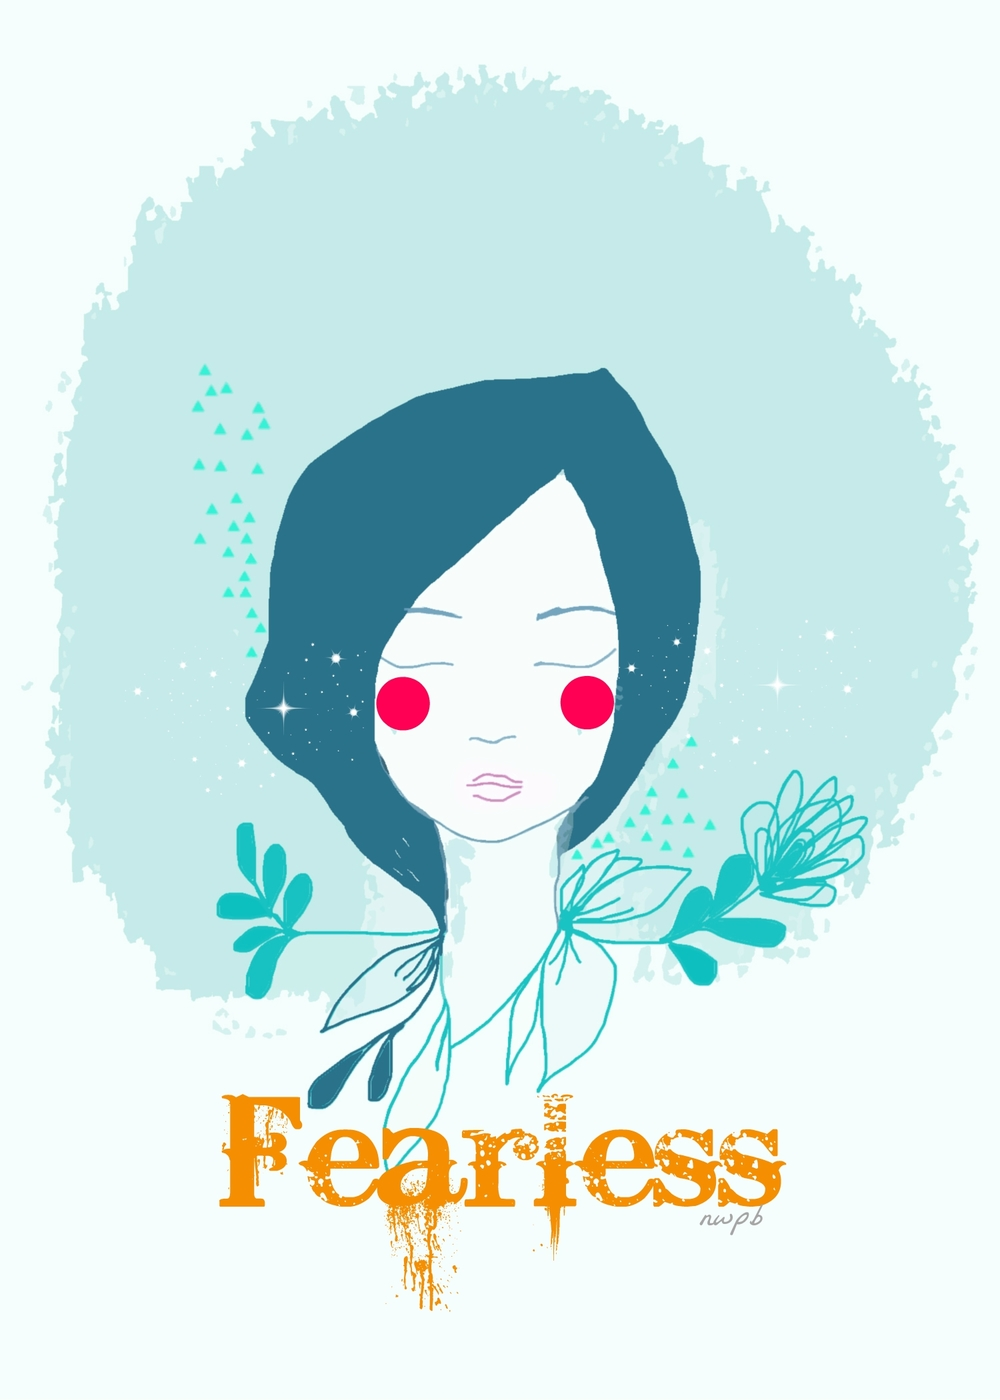 Fearless postcard, design II by Nieves Pumarejo